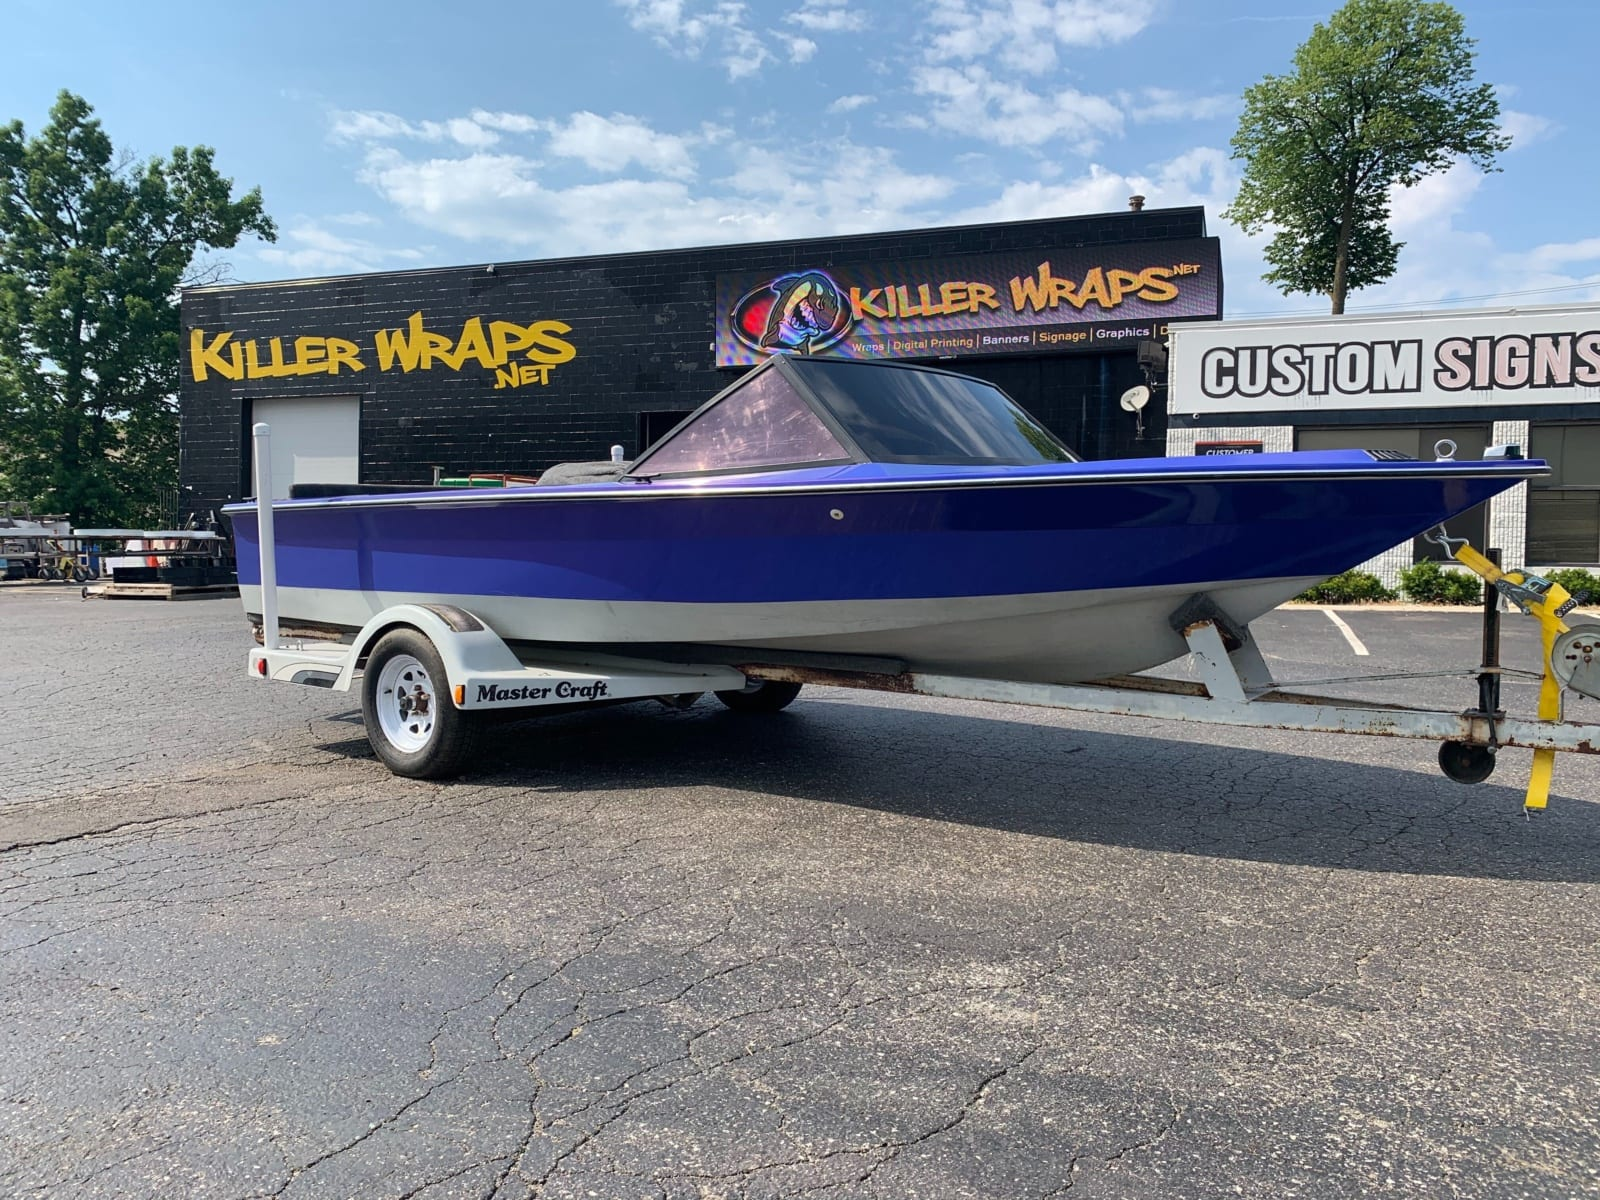 Killer-Wraps-Boat-Wraps-12